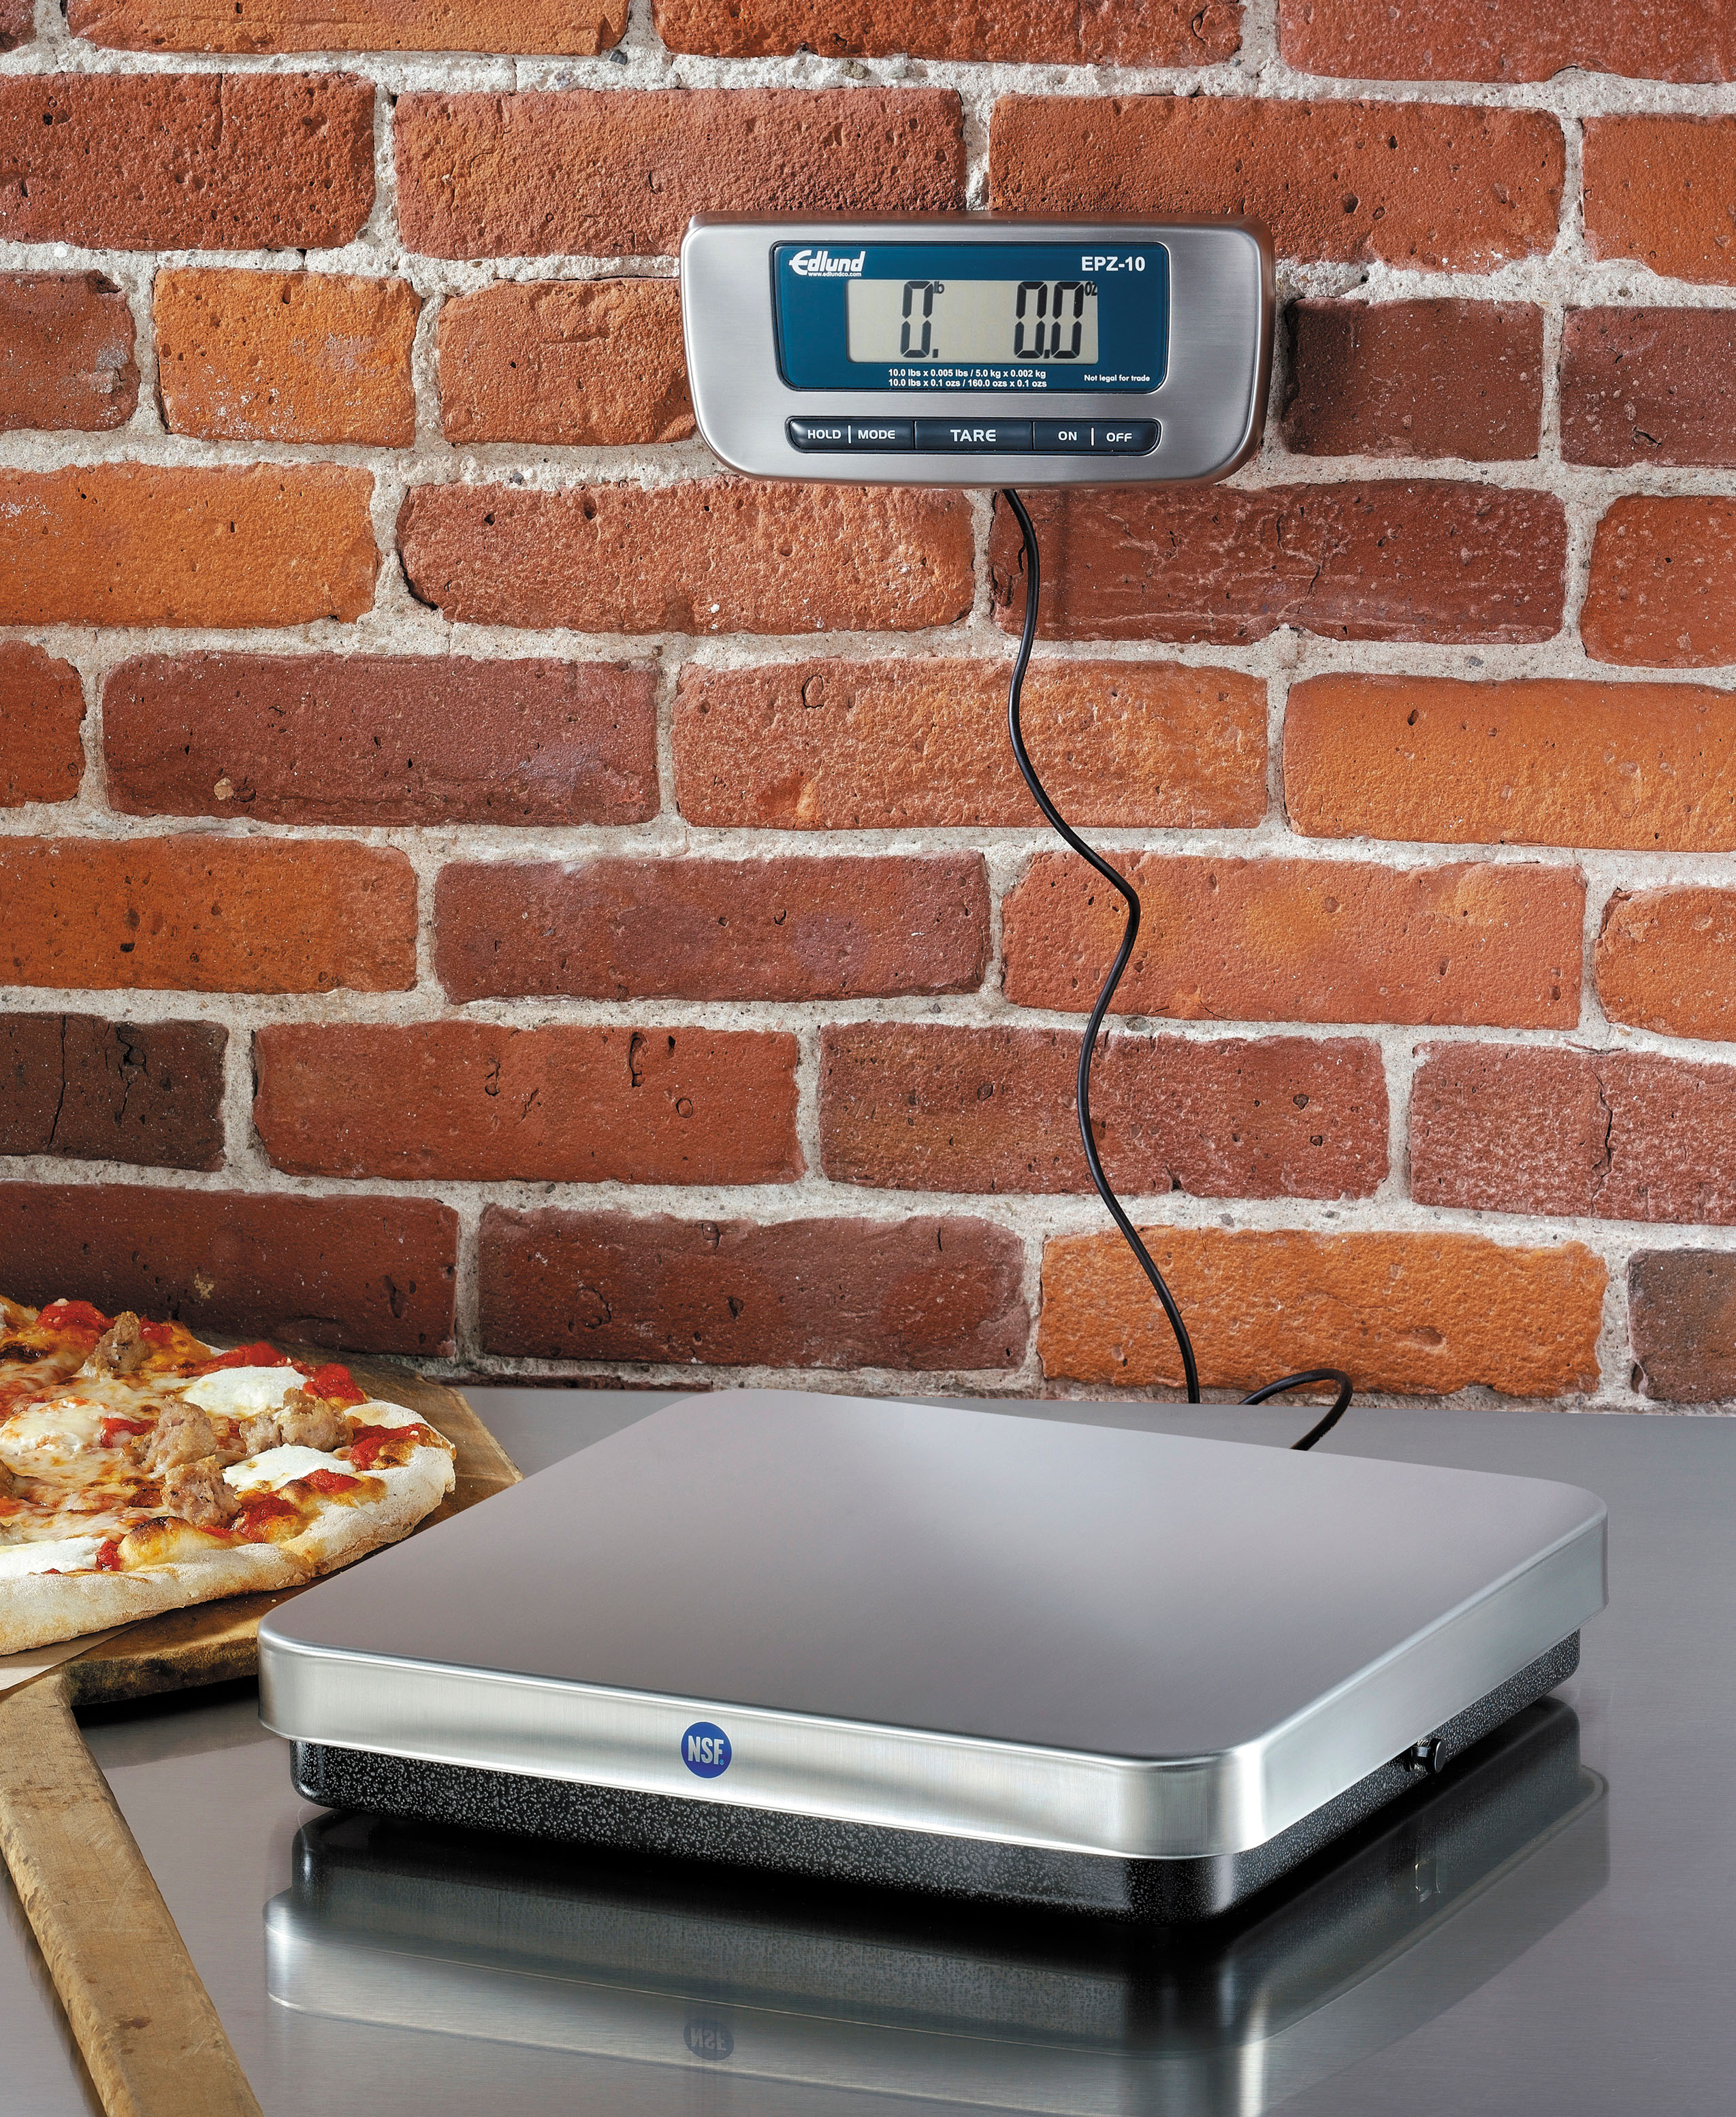 Edlund 5000 g Digital Metric Pizza Scale W/ Foot Switch Tare